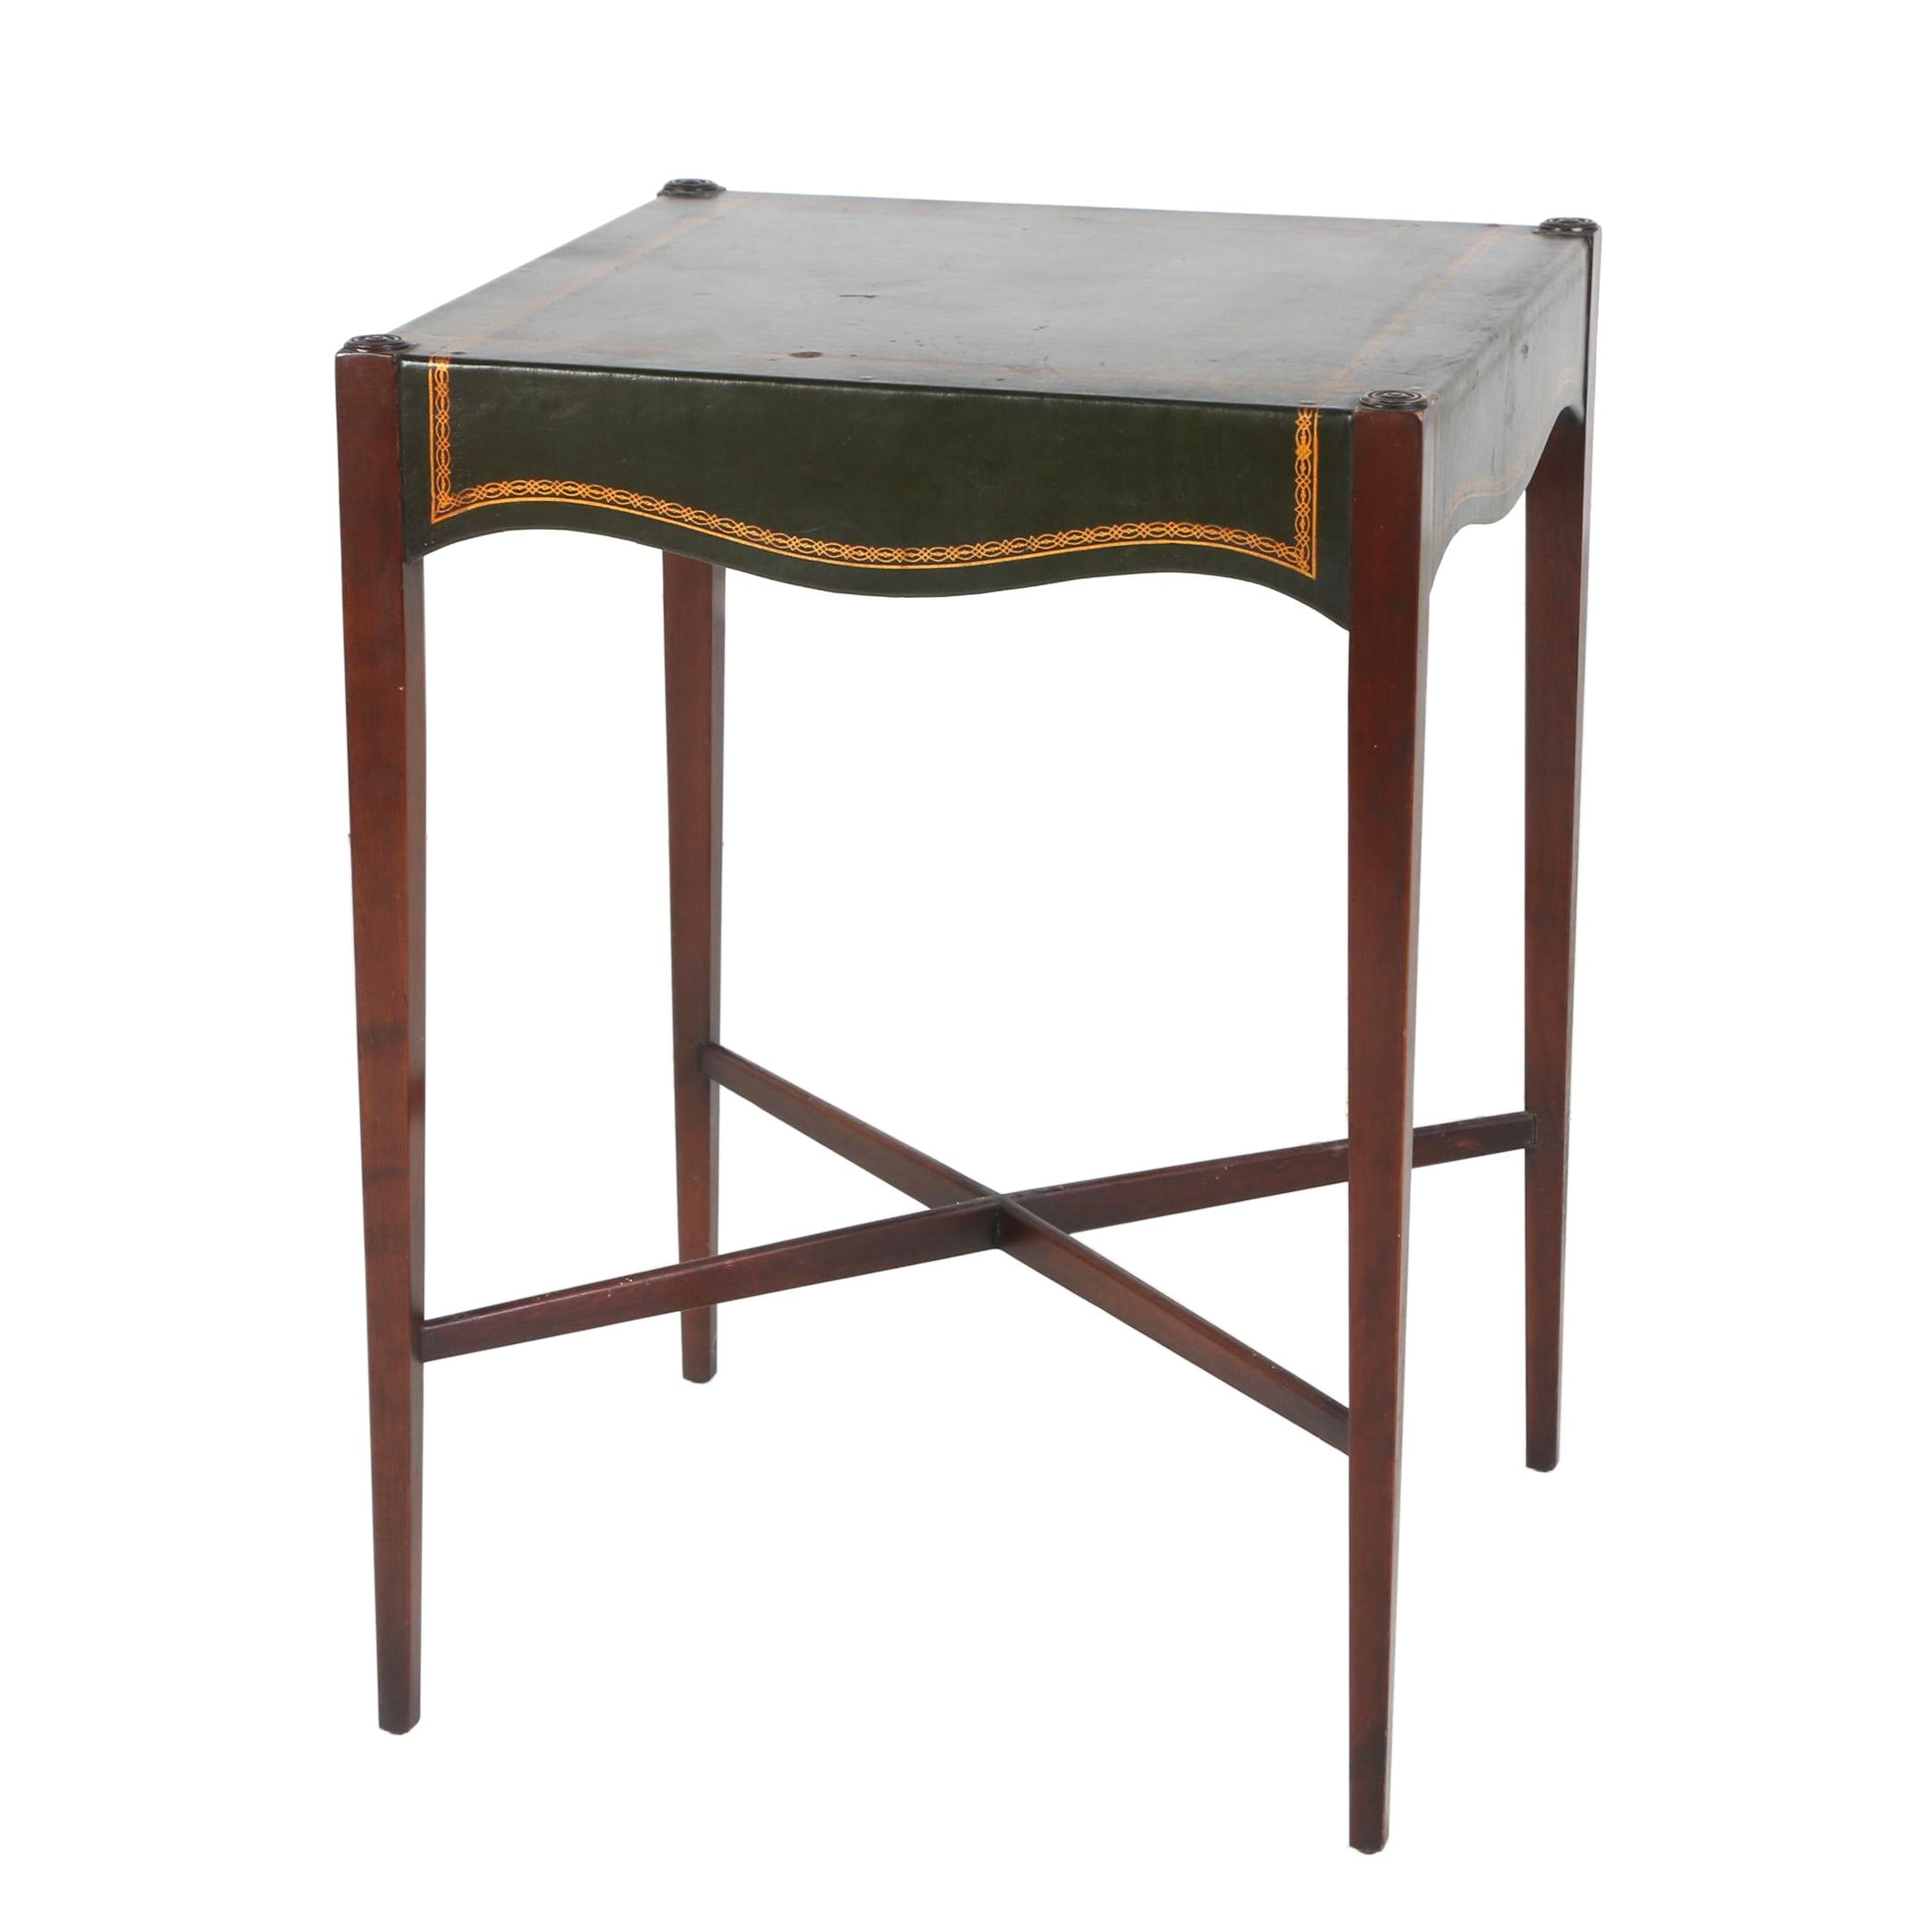 George III Style Cherrywood, Mahogany, and Leather Side Table by B. & S. Co.